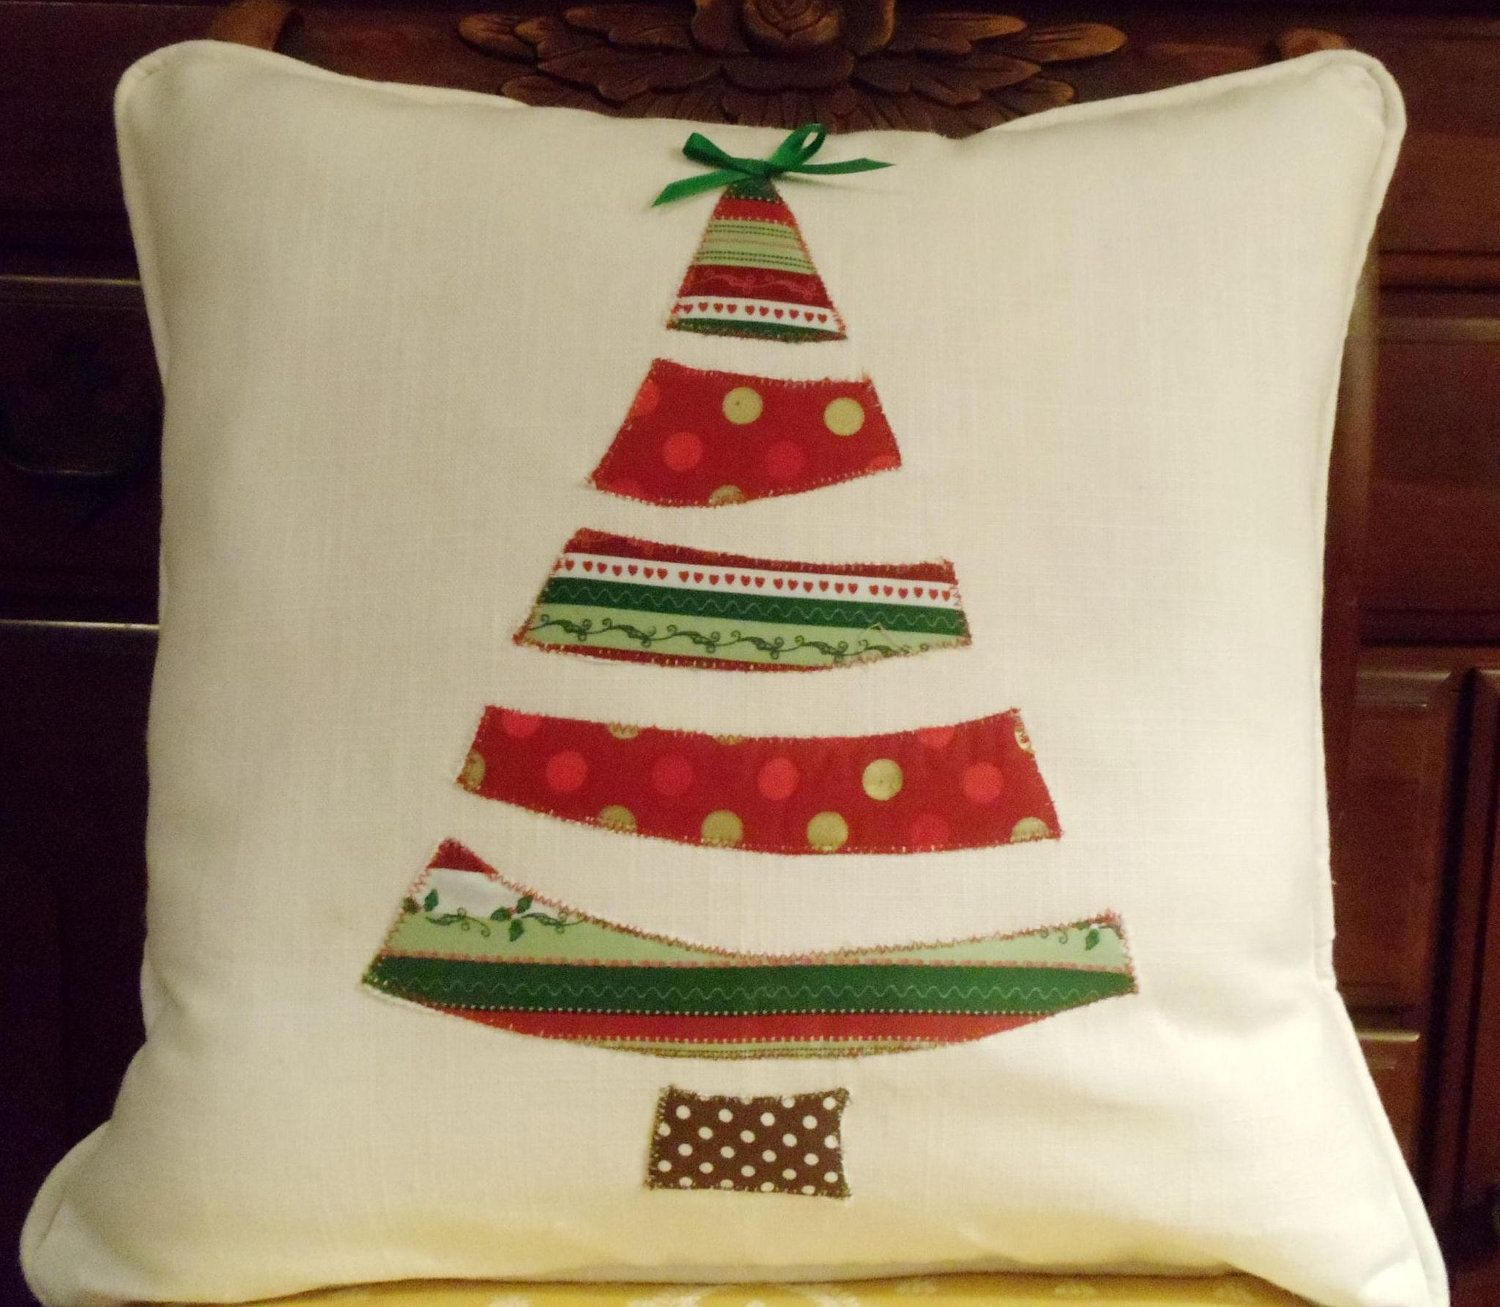 Christmas decor, whimsical Christmas tree, holiday pillow, 16x16 inch, pillow with tree, red and green pillow, fun home decorations